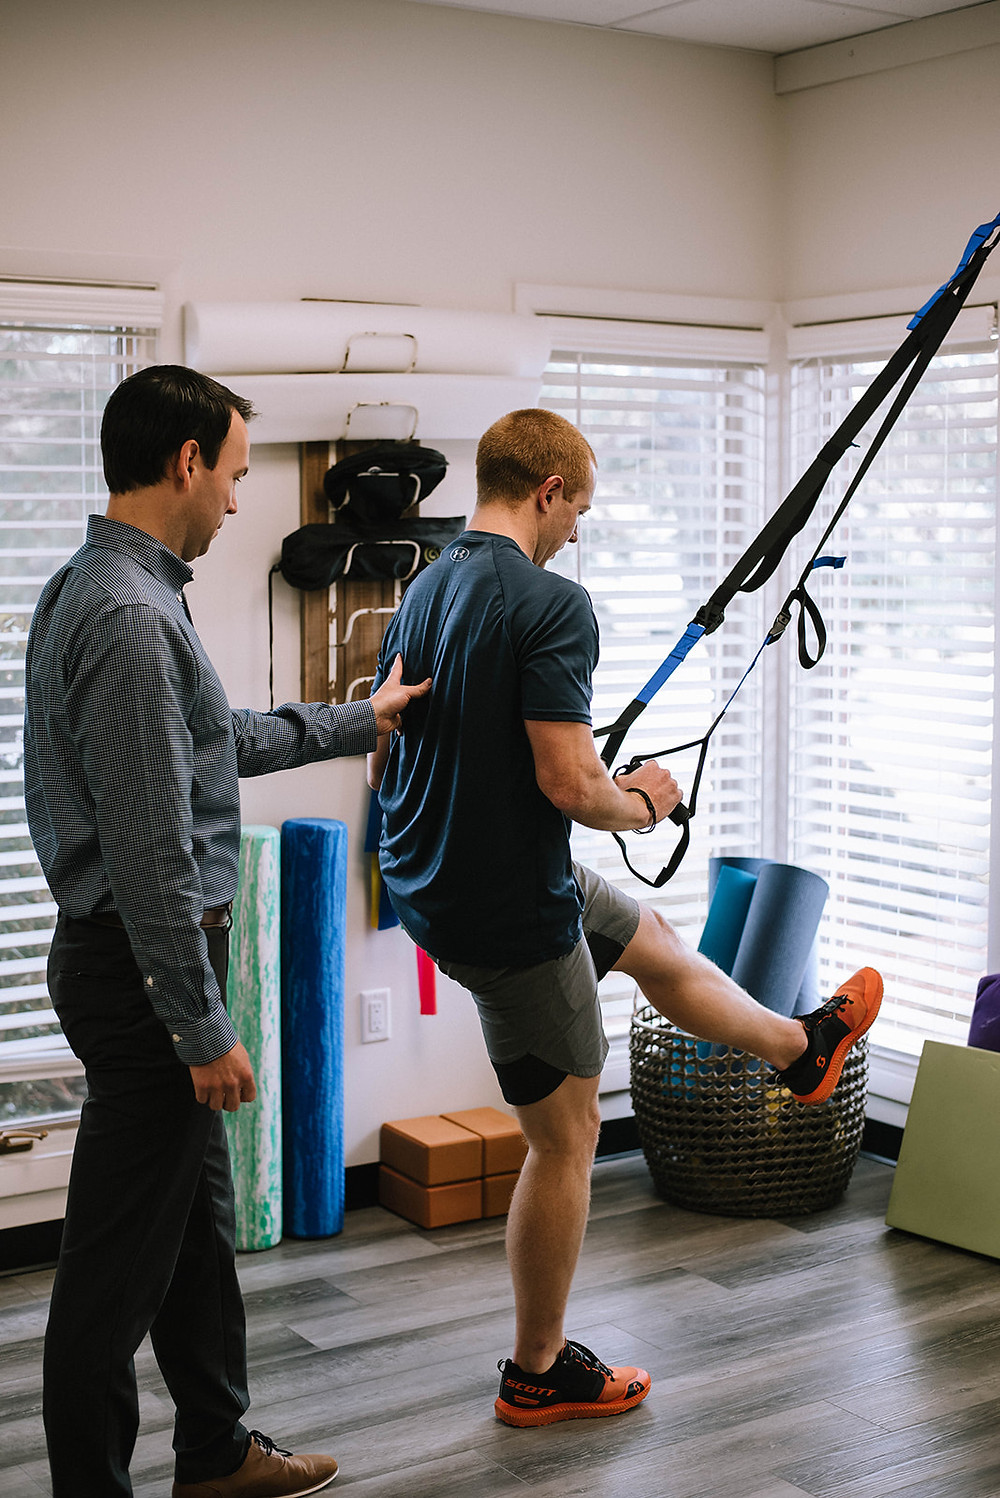 Skilled Professionals in Physical Therapy, Chiroptic, sport, yoga,